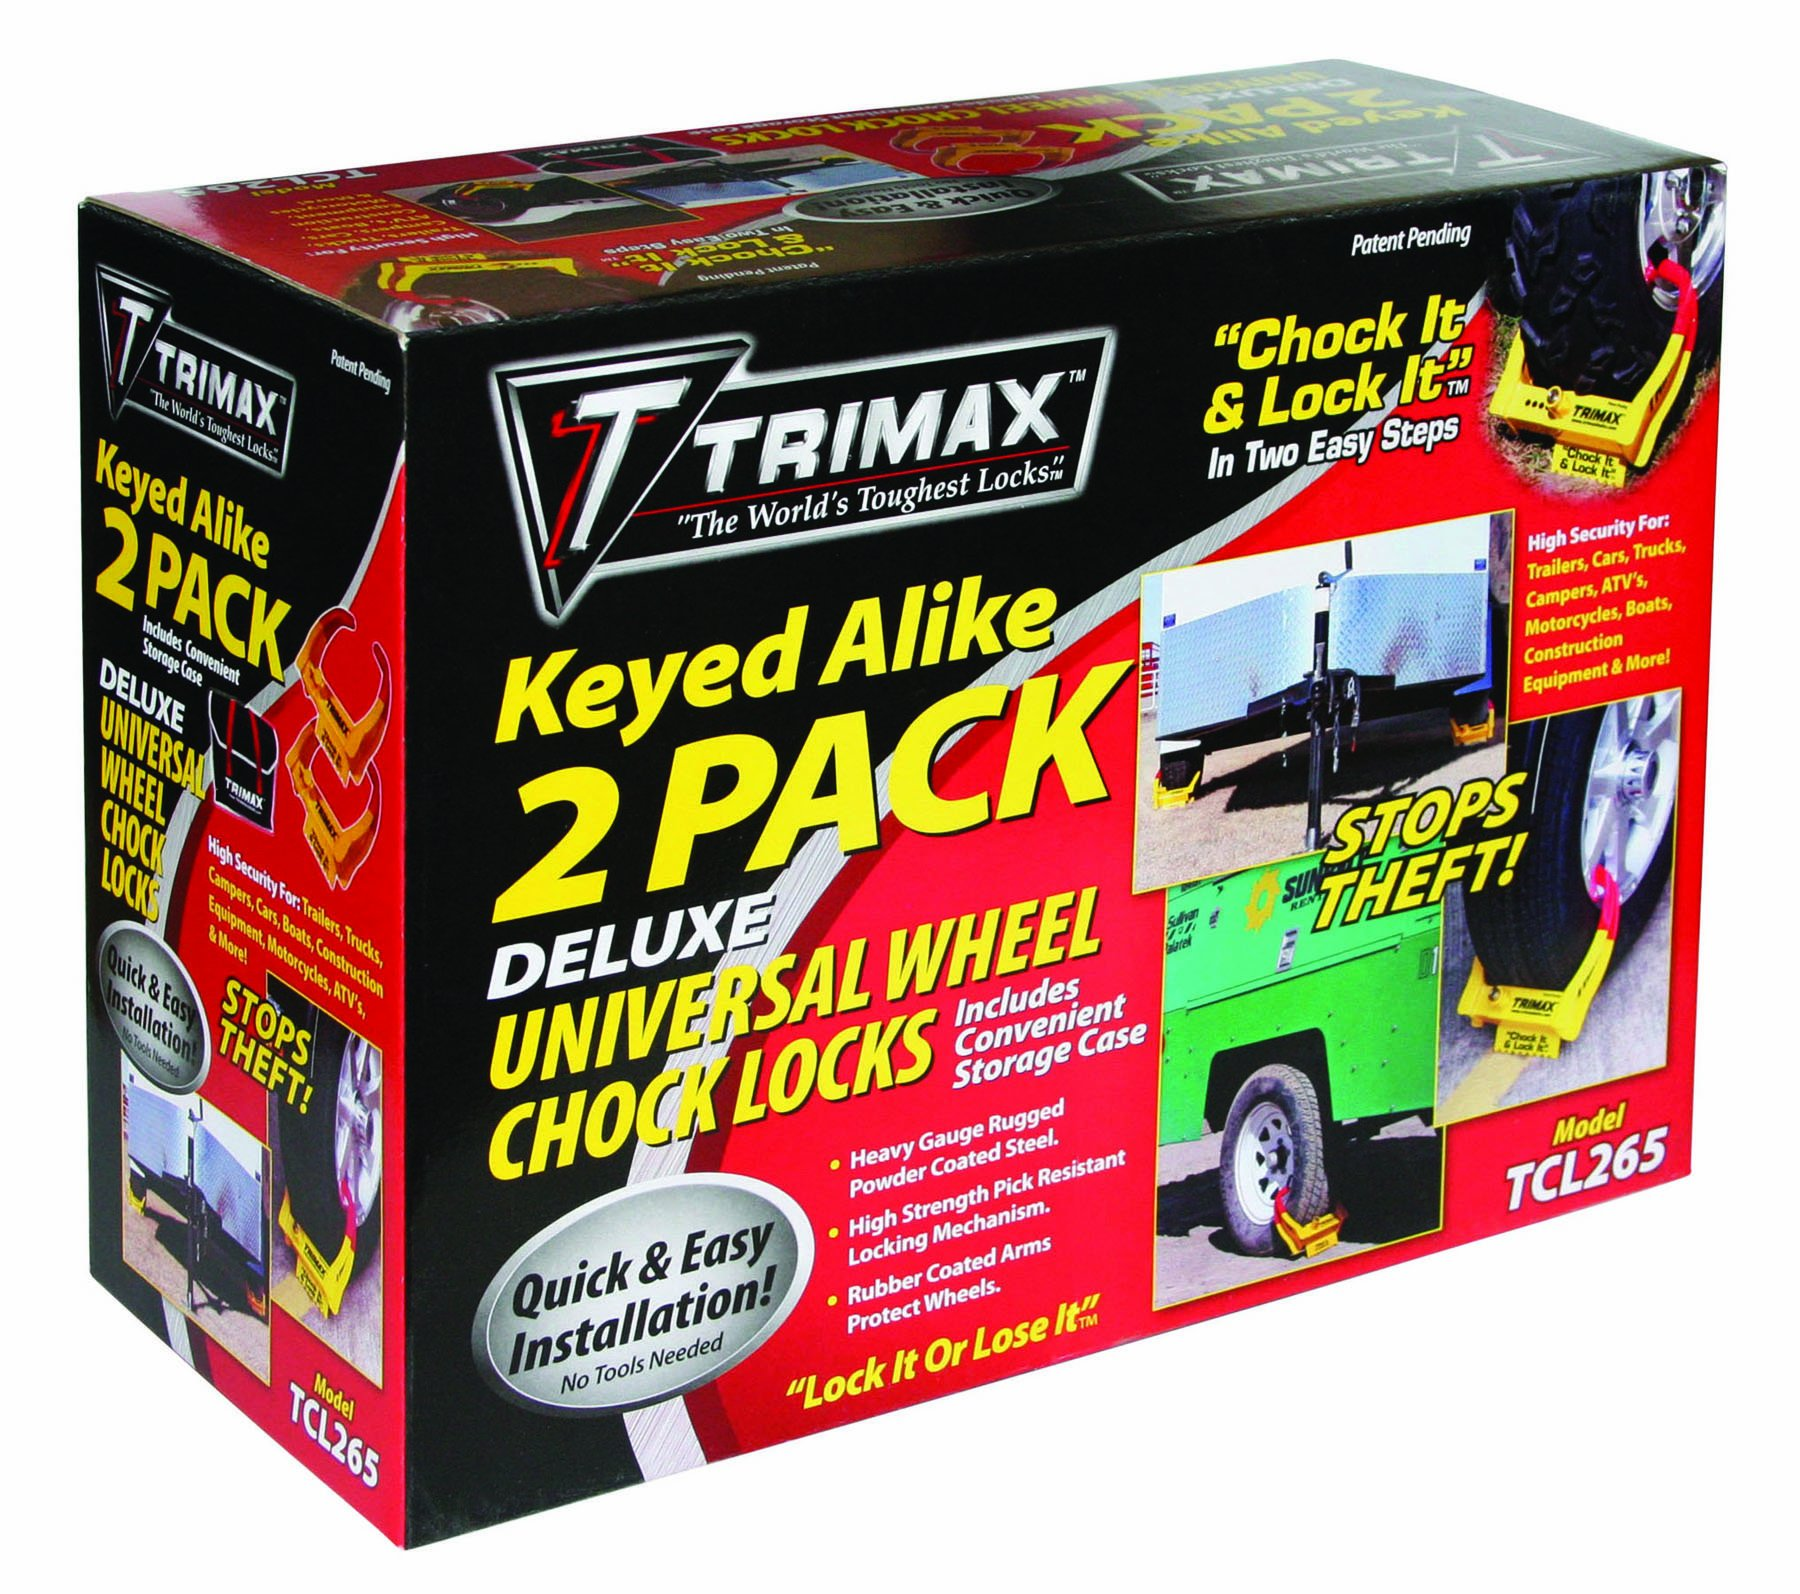 Trimax TCL265 Small Deluxe Keyed Alike Wheel Chock Lock, (Pack of 2) by Trimax (Image #1)